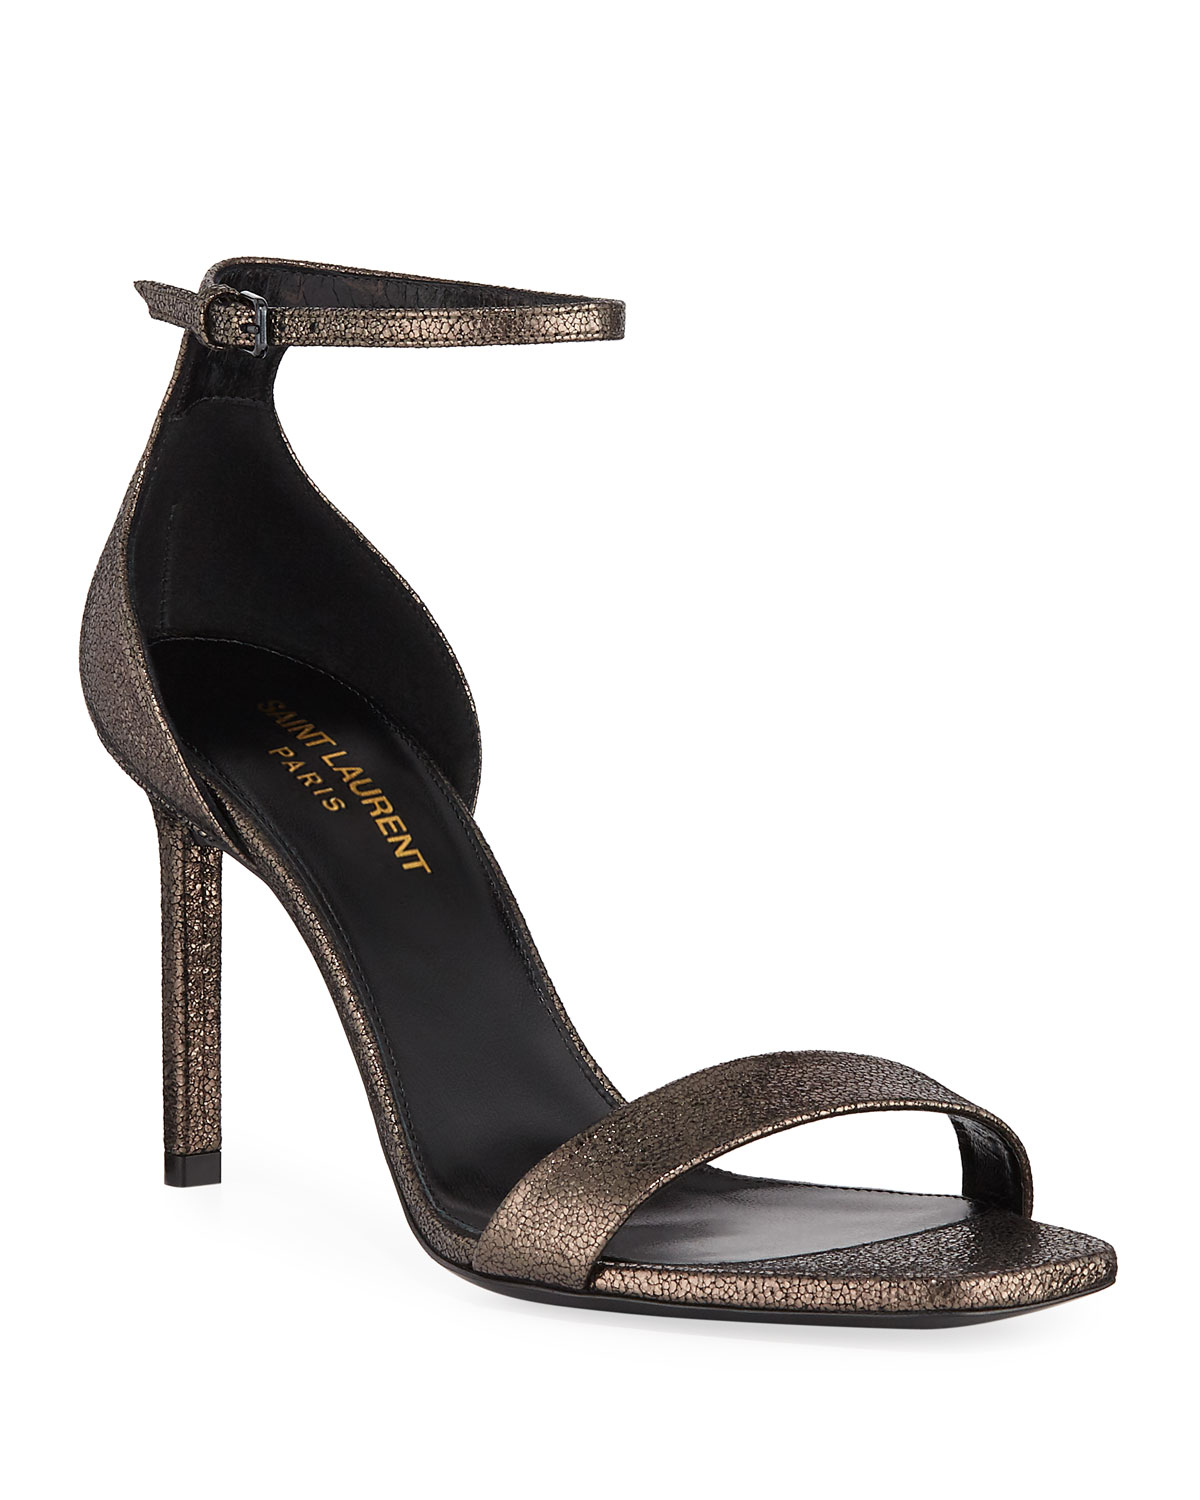 aa95906ff Saint Laurent Amber Metallic Ankle-Wrap Sandals